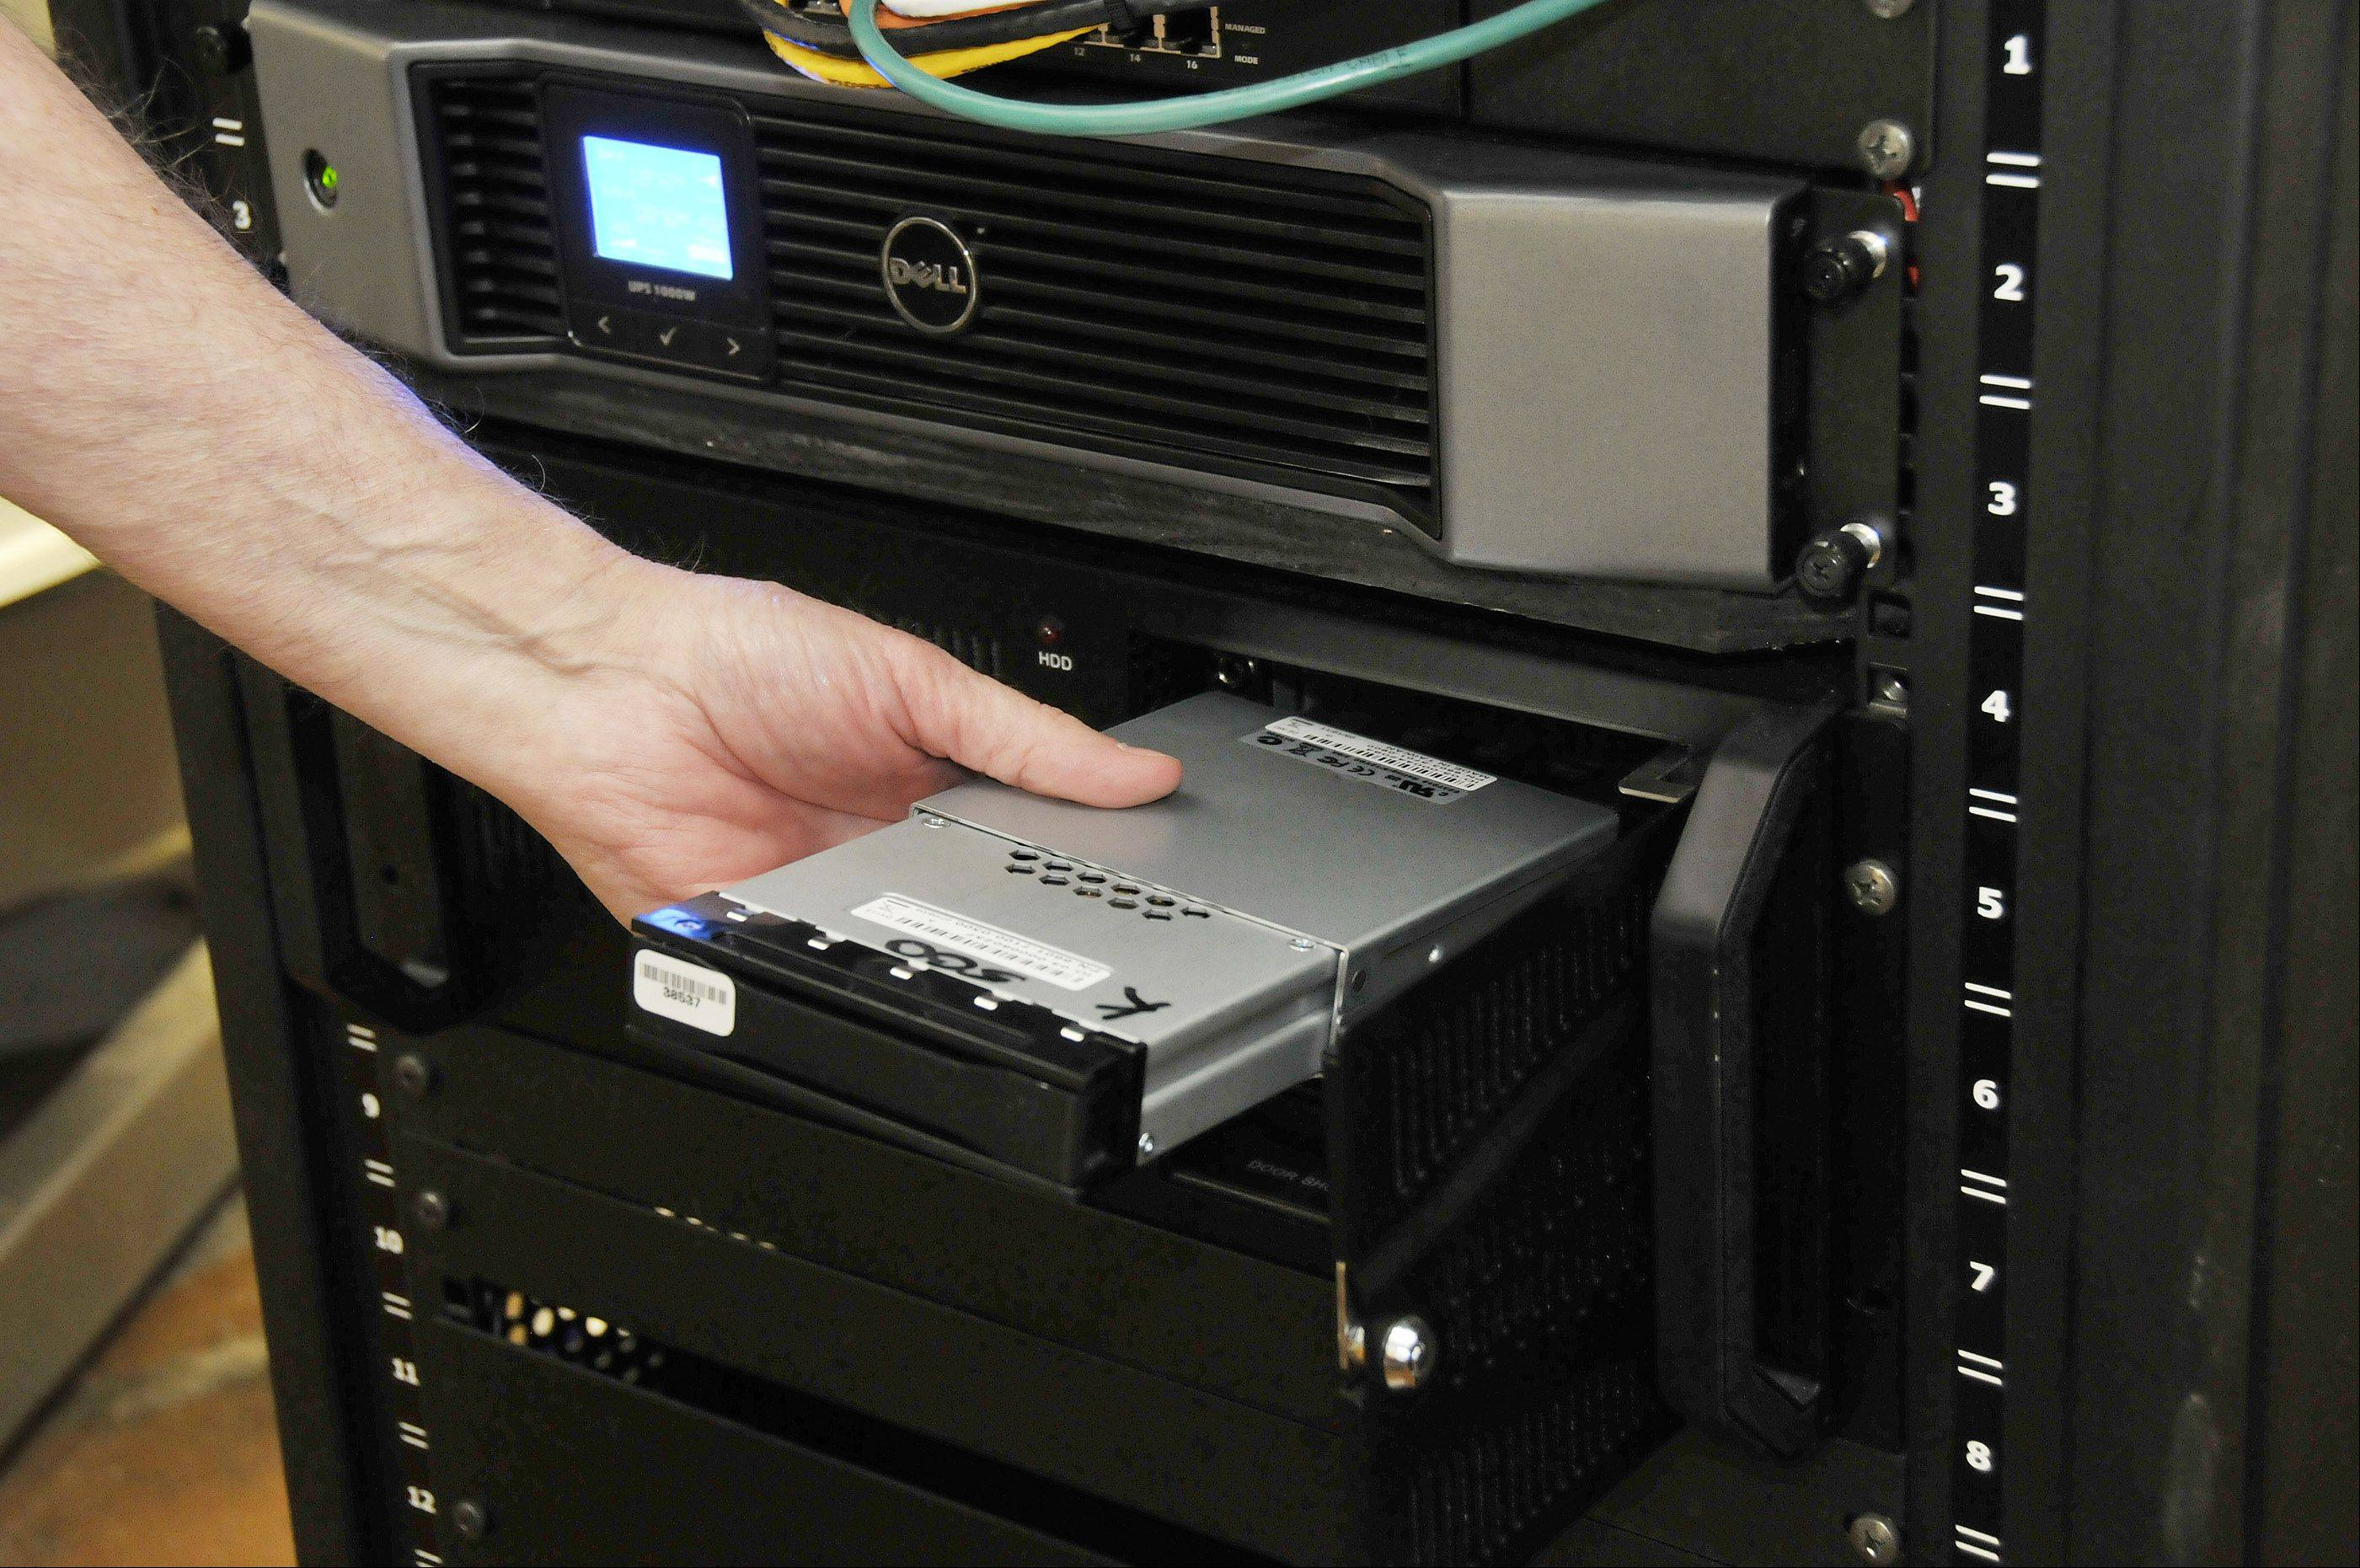 Willis Johnson, owner of Tivoli and Classic Cinema theaters, shows how the digital movies are fed into the back of a new digital projector on a portable hard drive at The Tivoli in Downers Grove. Movies can also be directly downloaded into the theater's computer system via a satellite dish on the roof.